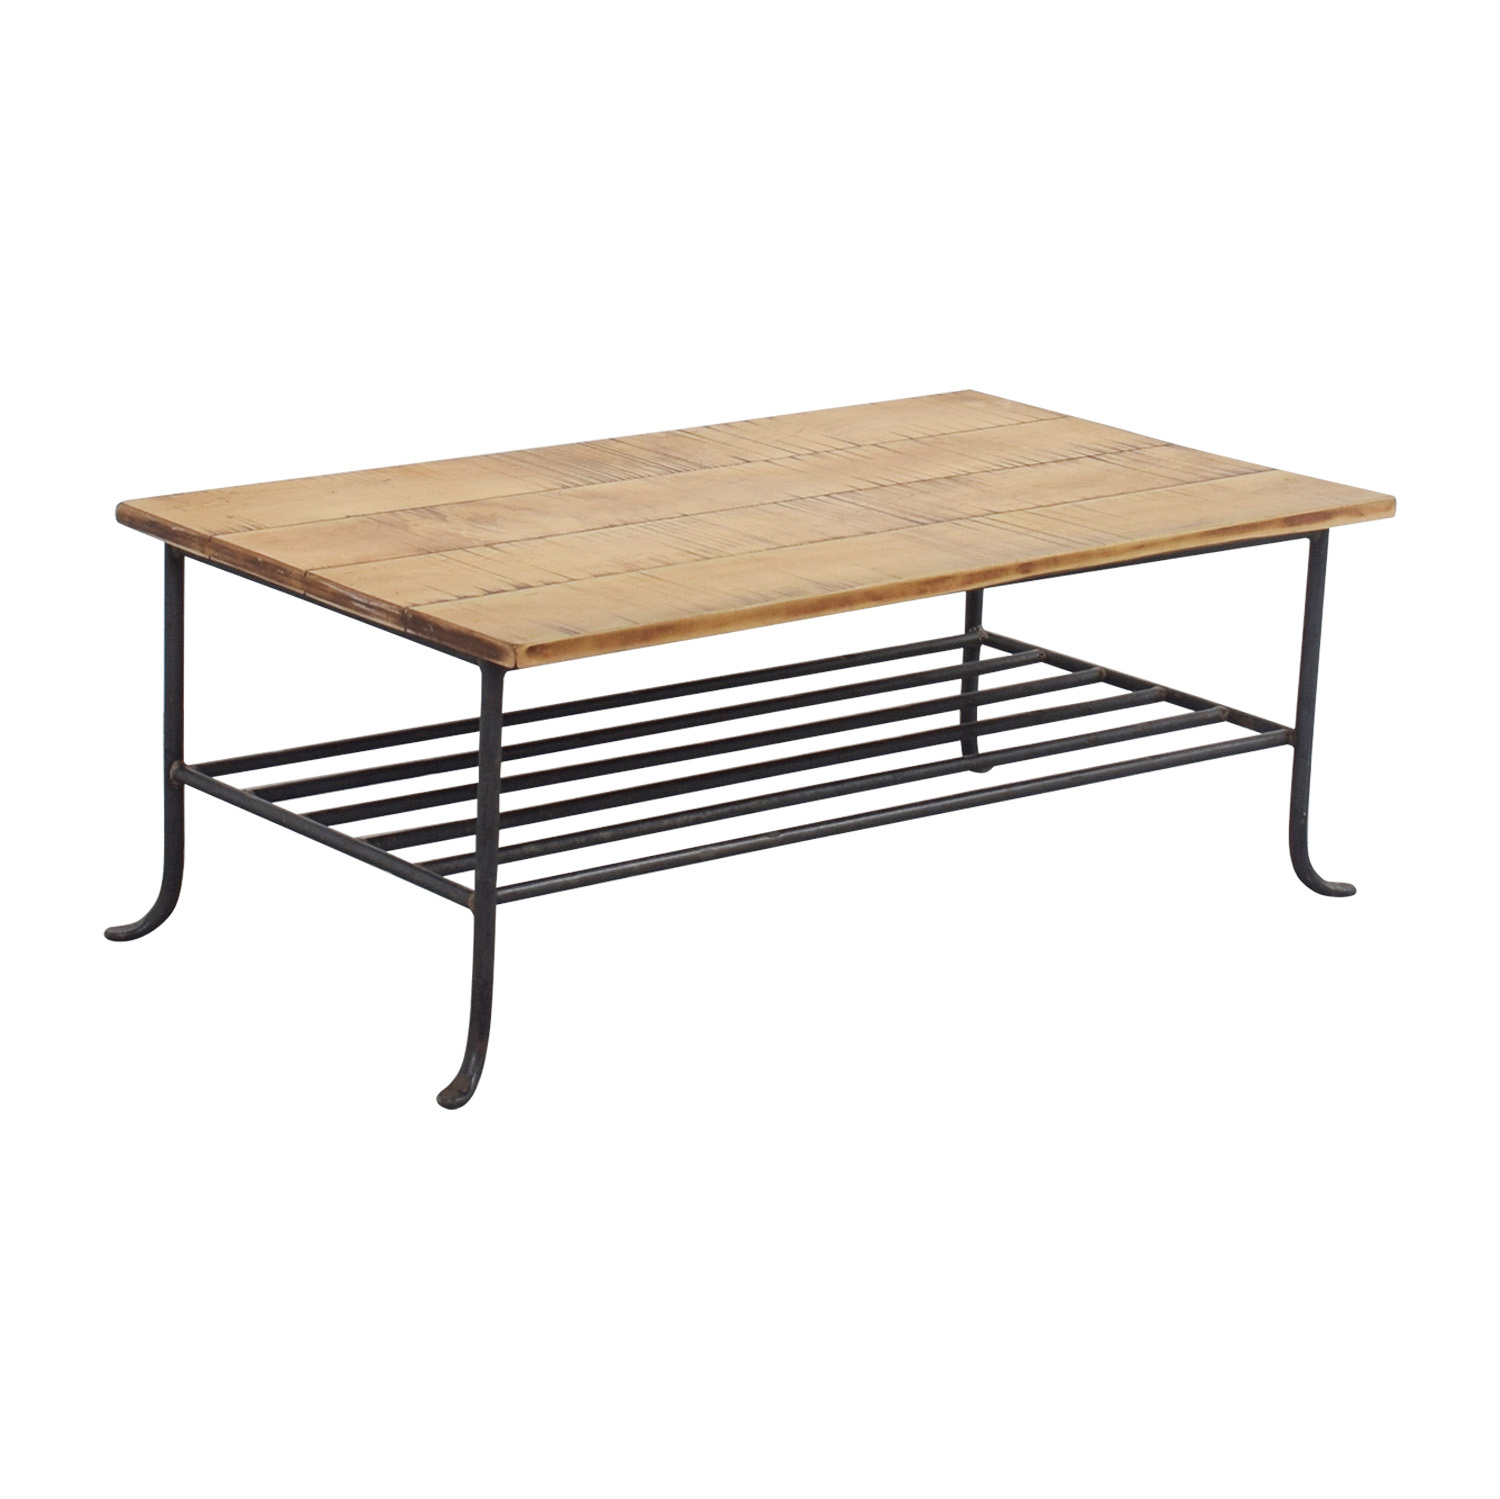 56 off rustic wrought iron and wood coffee table tables With rustic wood and wrought iron coffee table